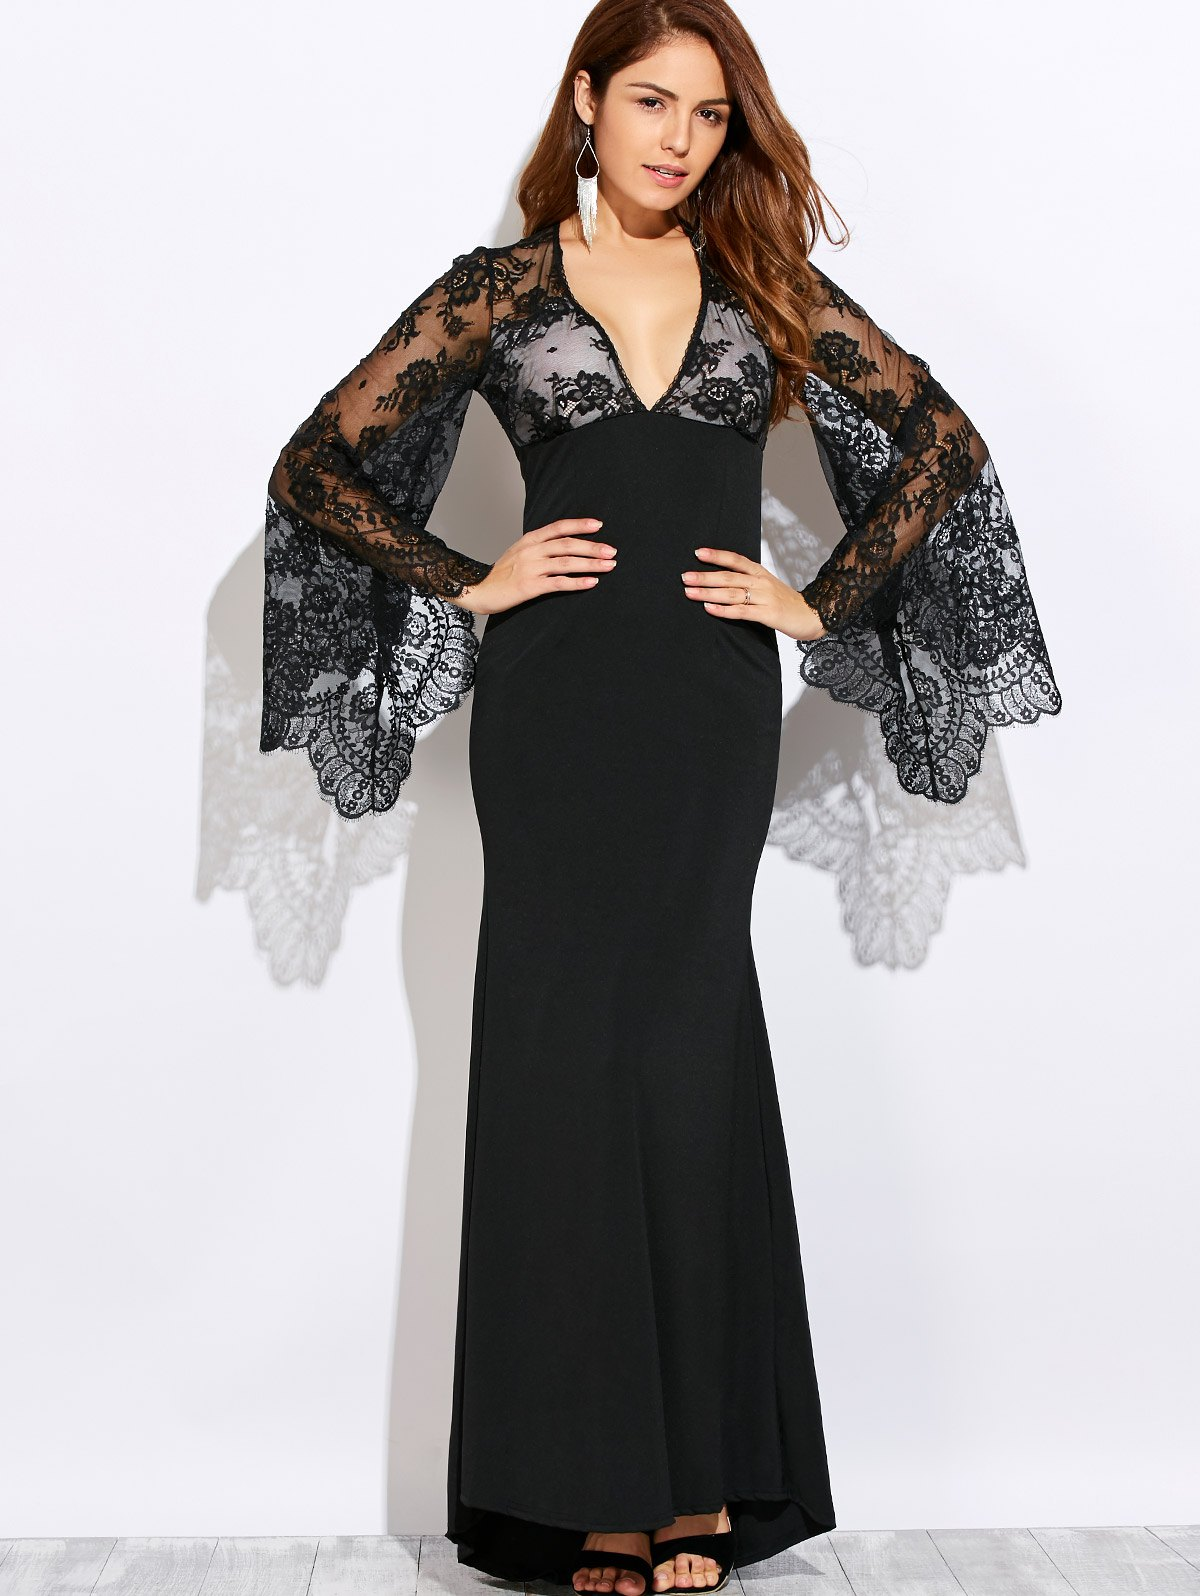 Plunging Neck Cutout Lace Spliced Maxi Prom Dress